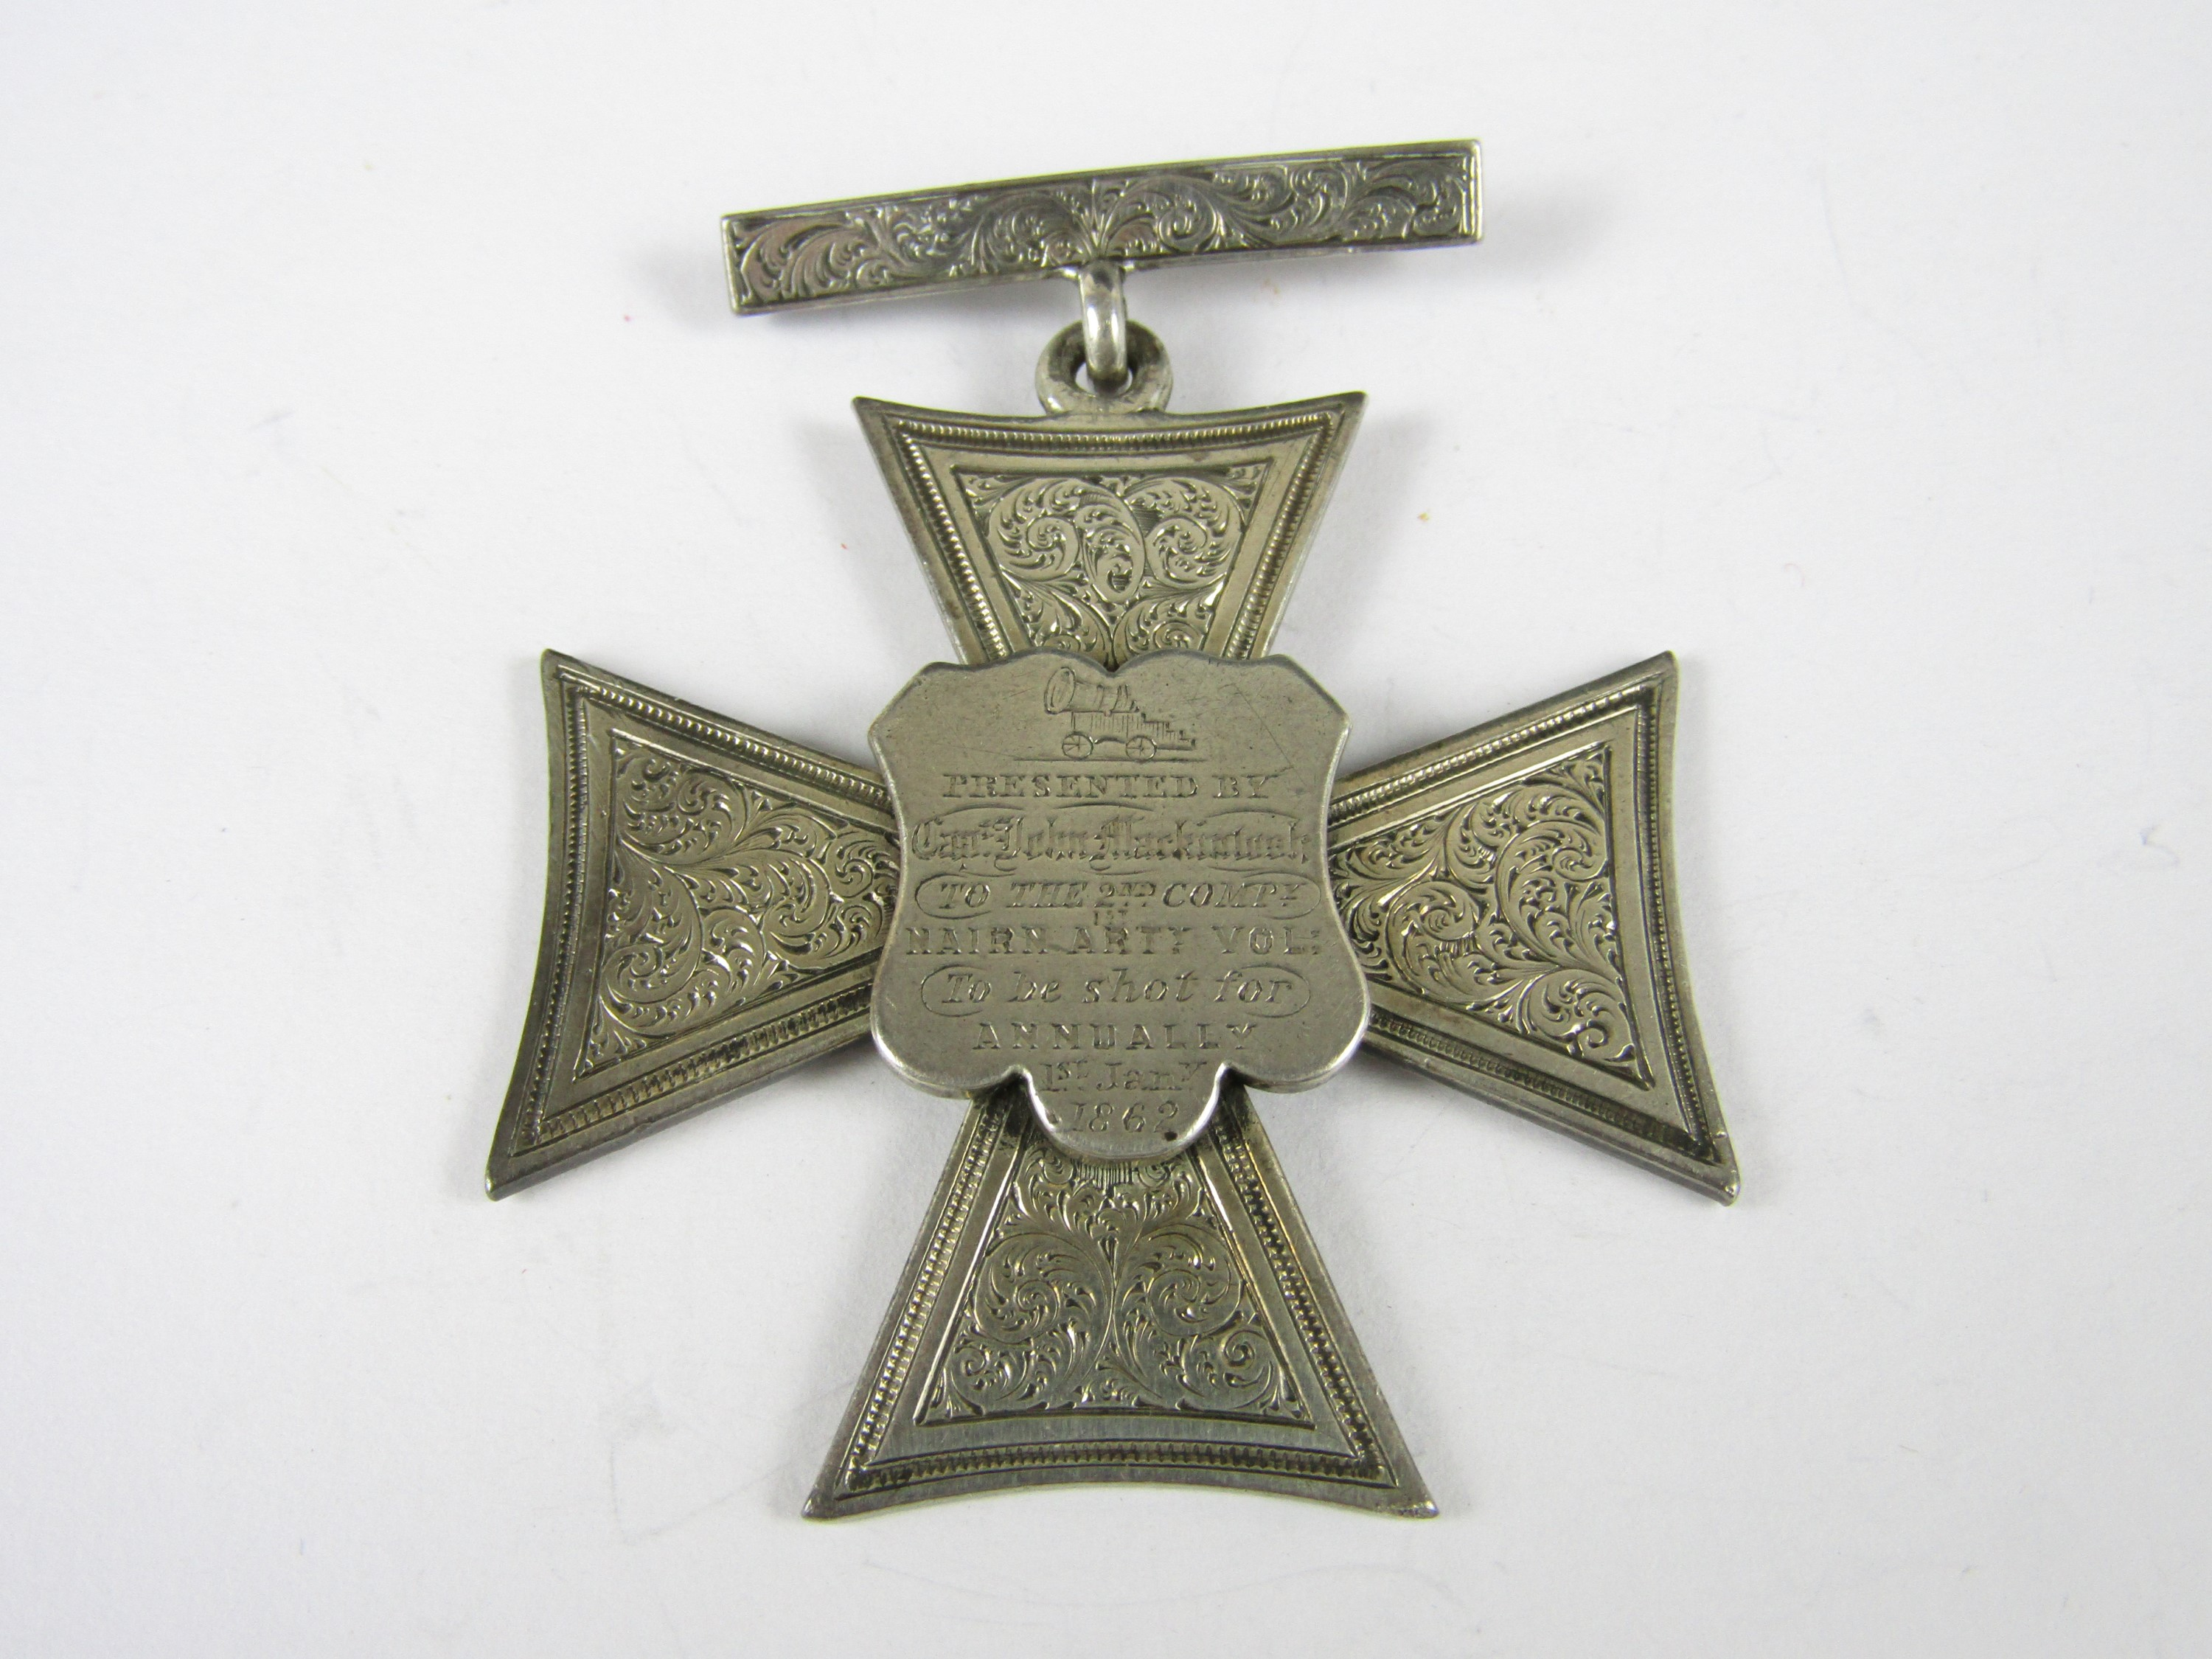 Lot 50 - A large Victorian prize medallion presented by Captain John MackIntosh to the 2nd Company 1st